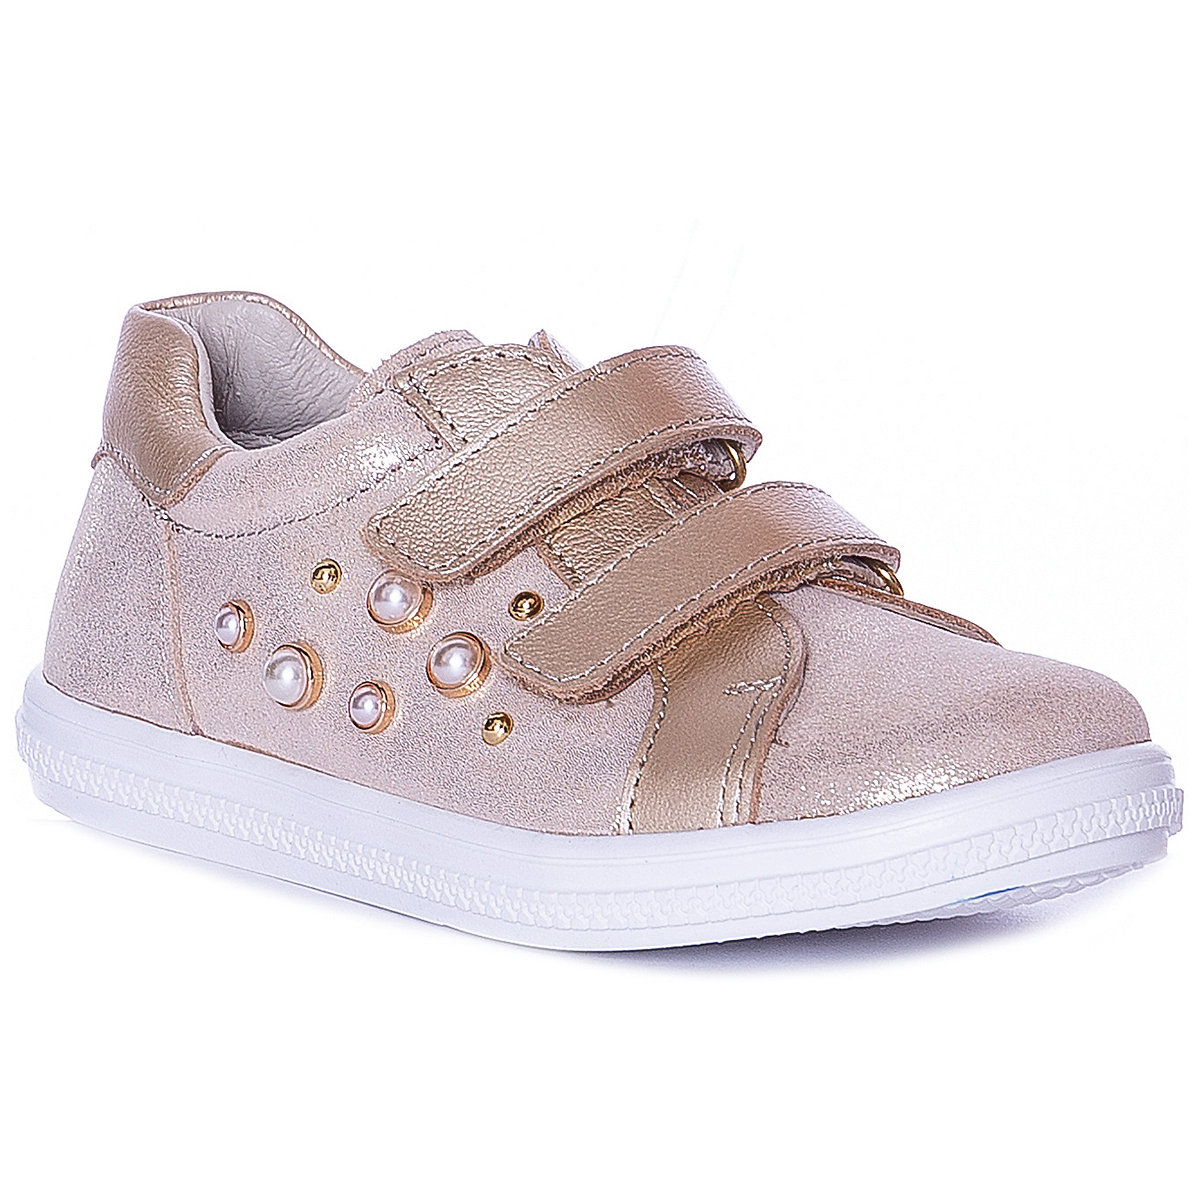 KOTOFEY Children Casual Shoes 10813962 sneakers running shoes for children Gold sport Girls Leather sneakers women trainers breathable print flower casual shoes woman 2018 summer mesh low top shoes zapatillas deportivas